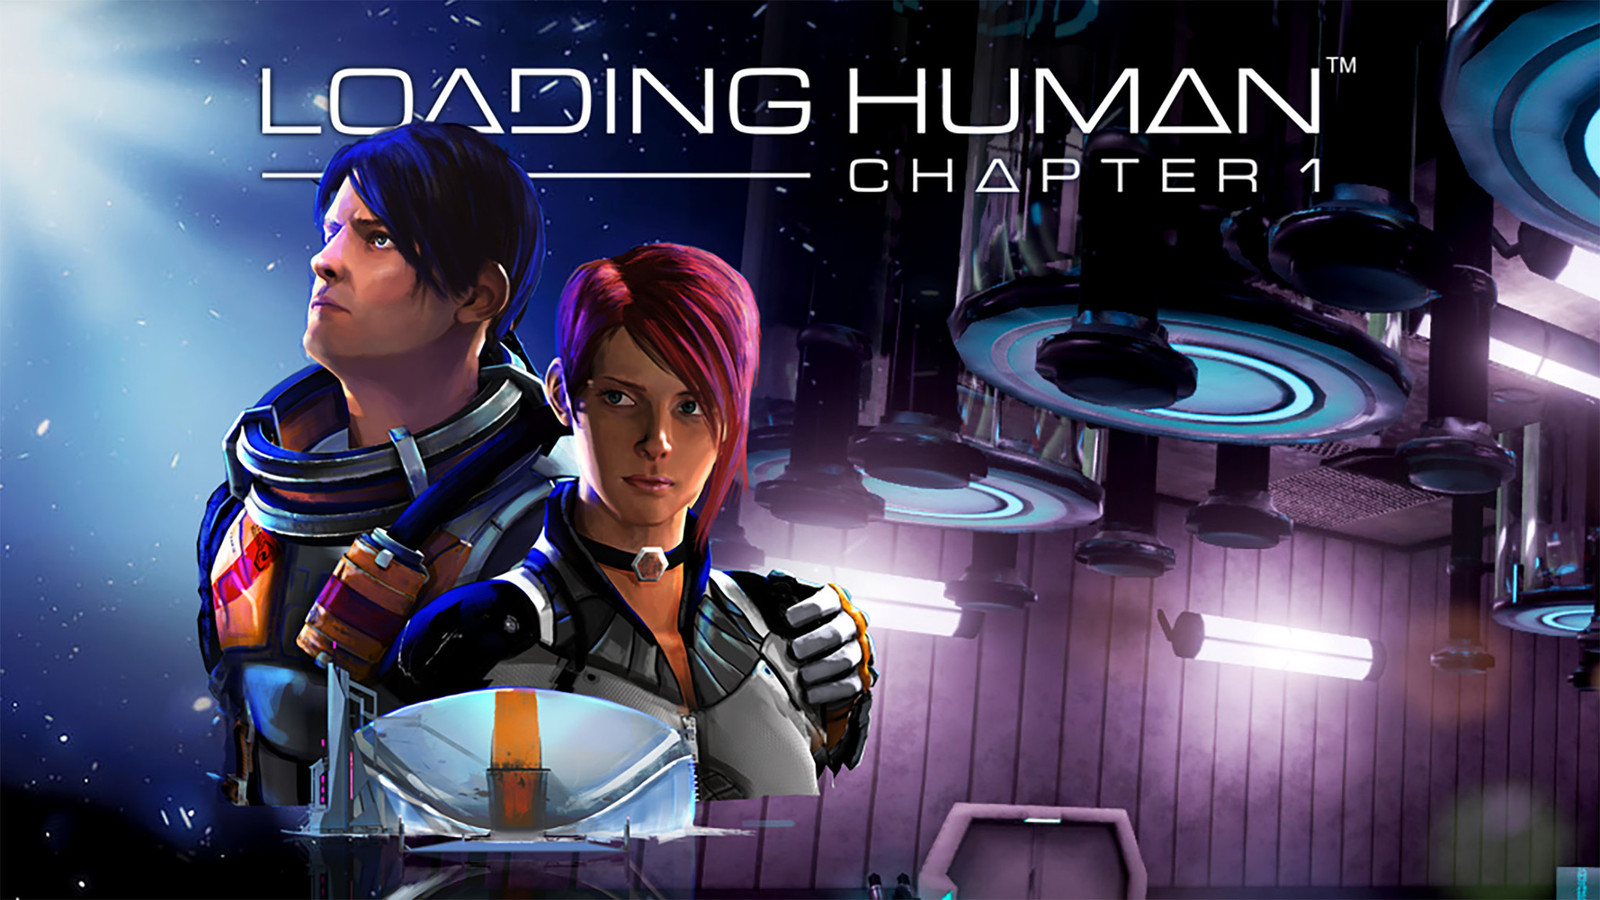 Loading Human: Chapter 1 review